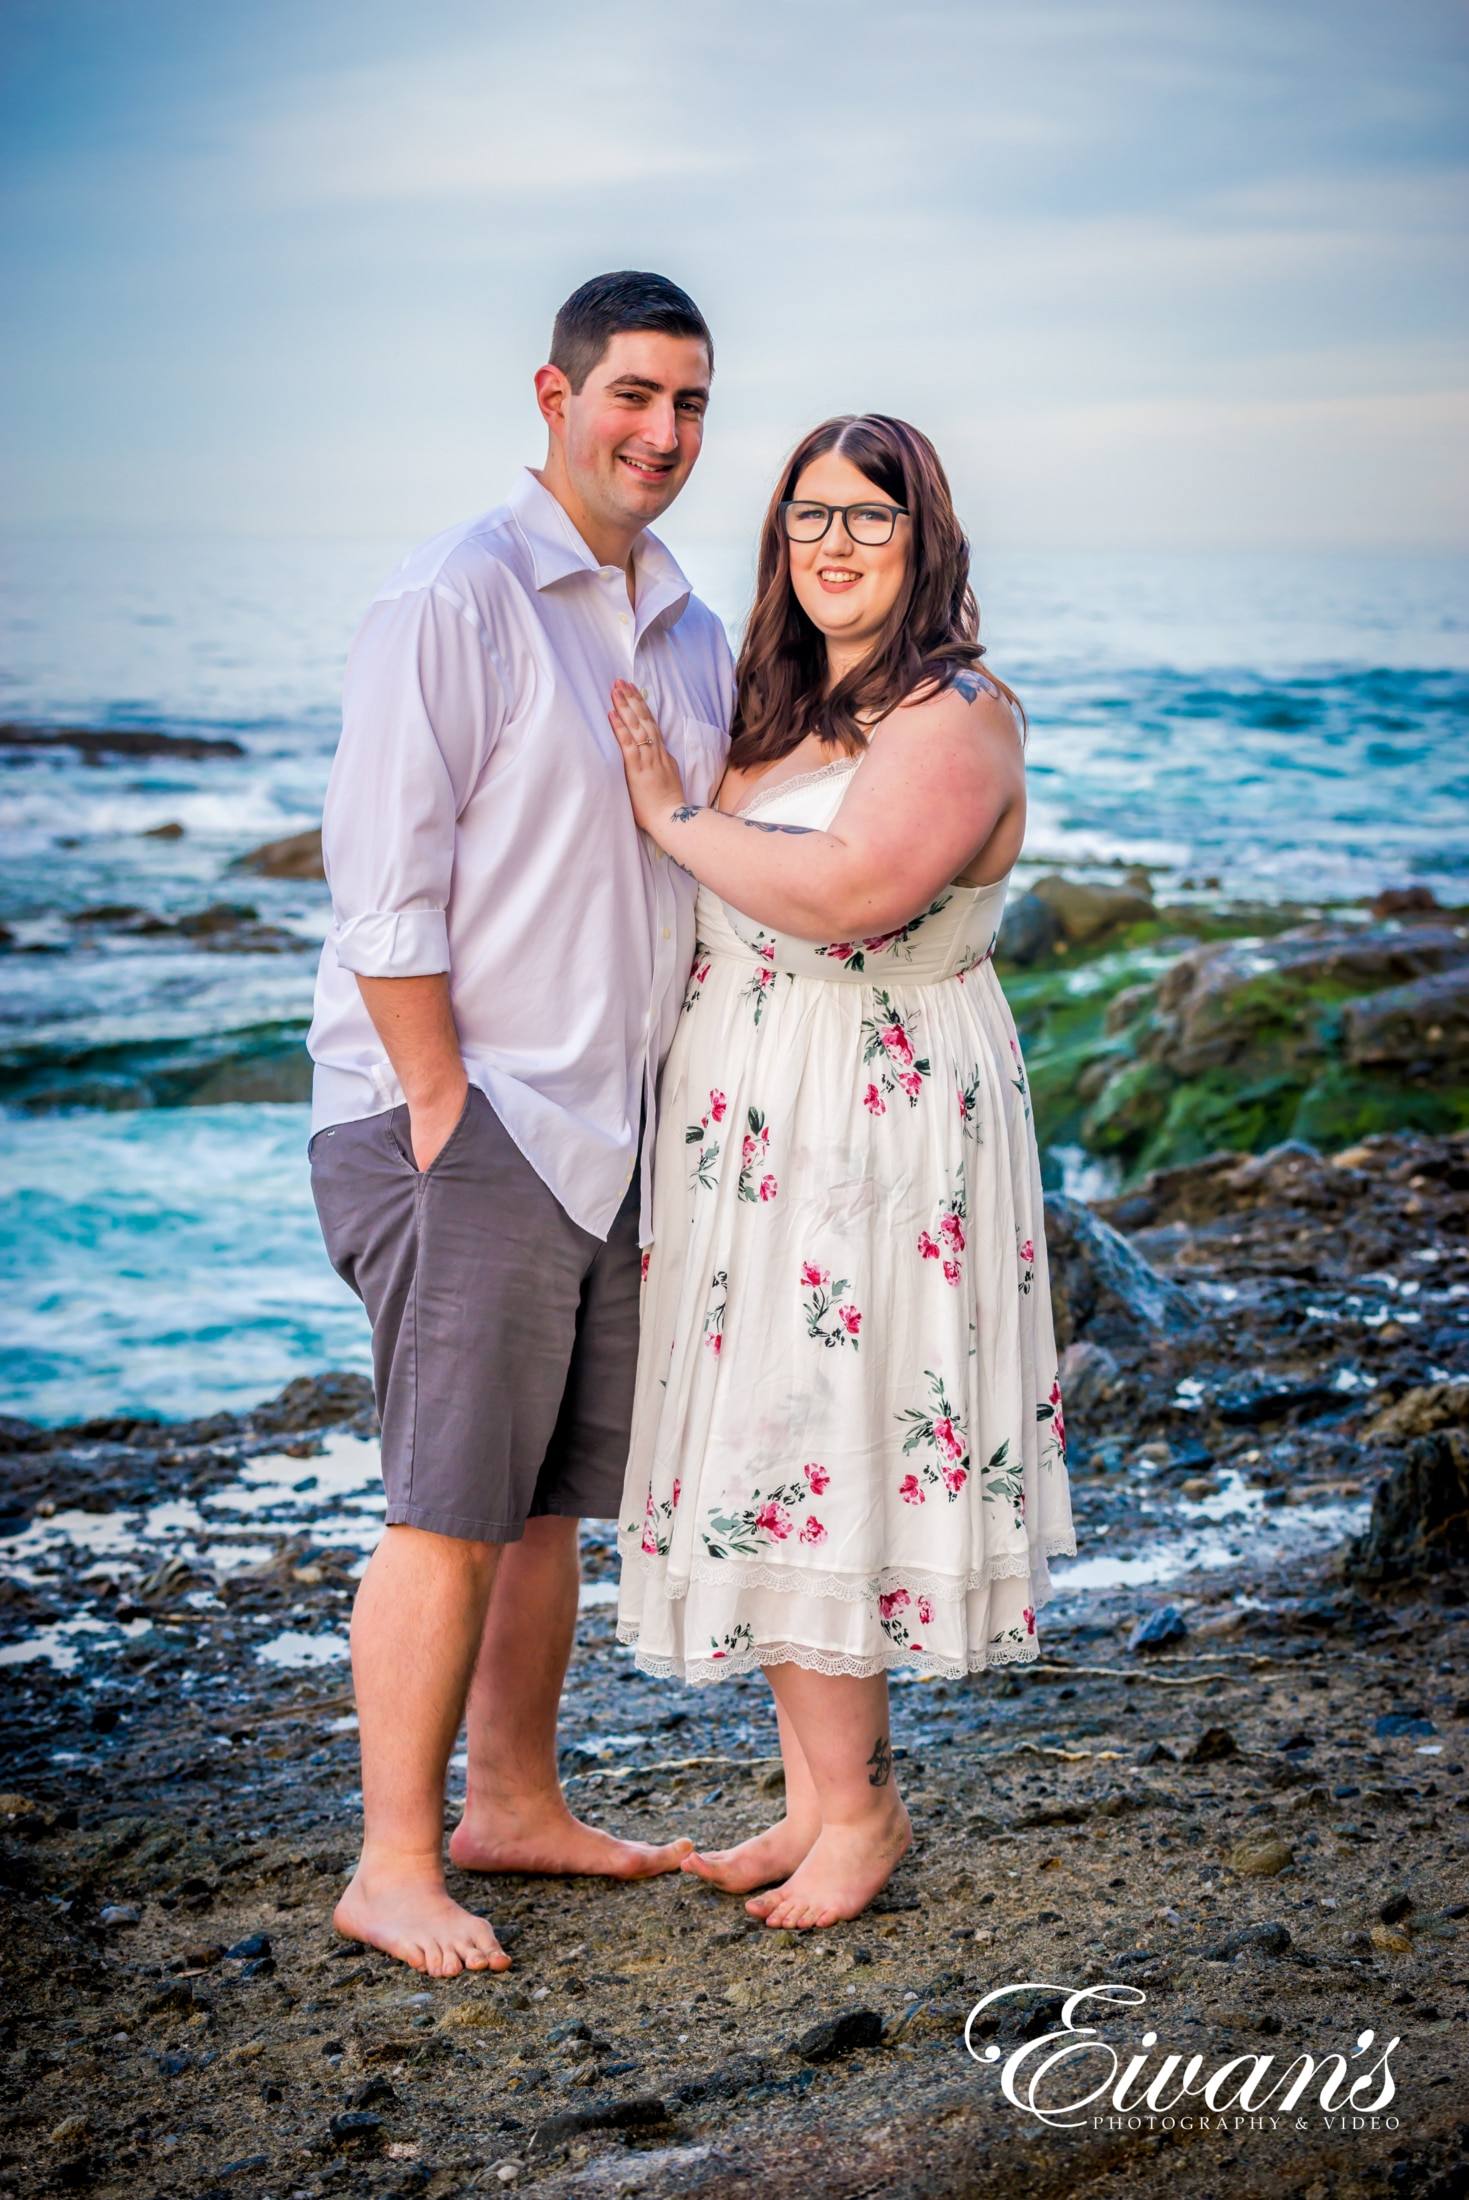 image of engaged couple at the beach